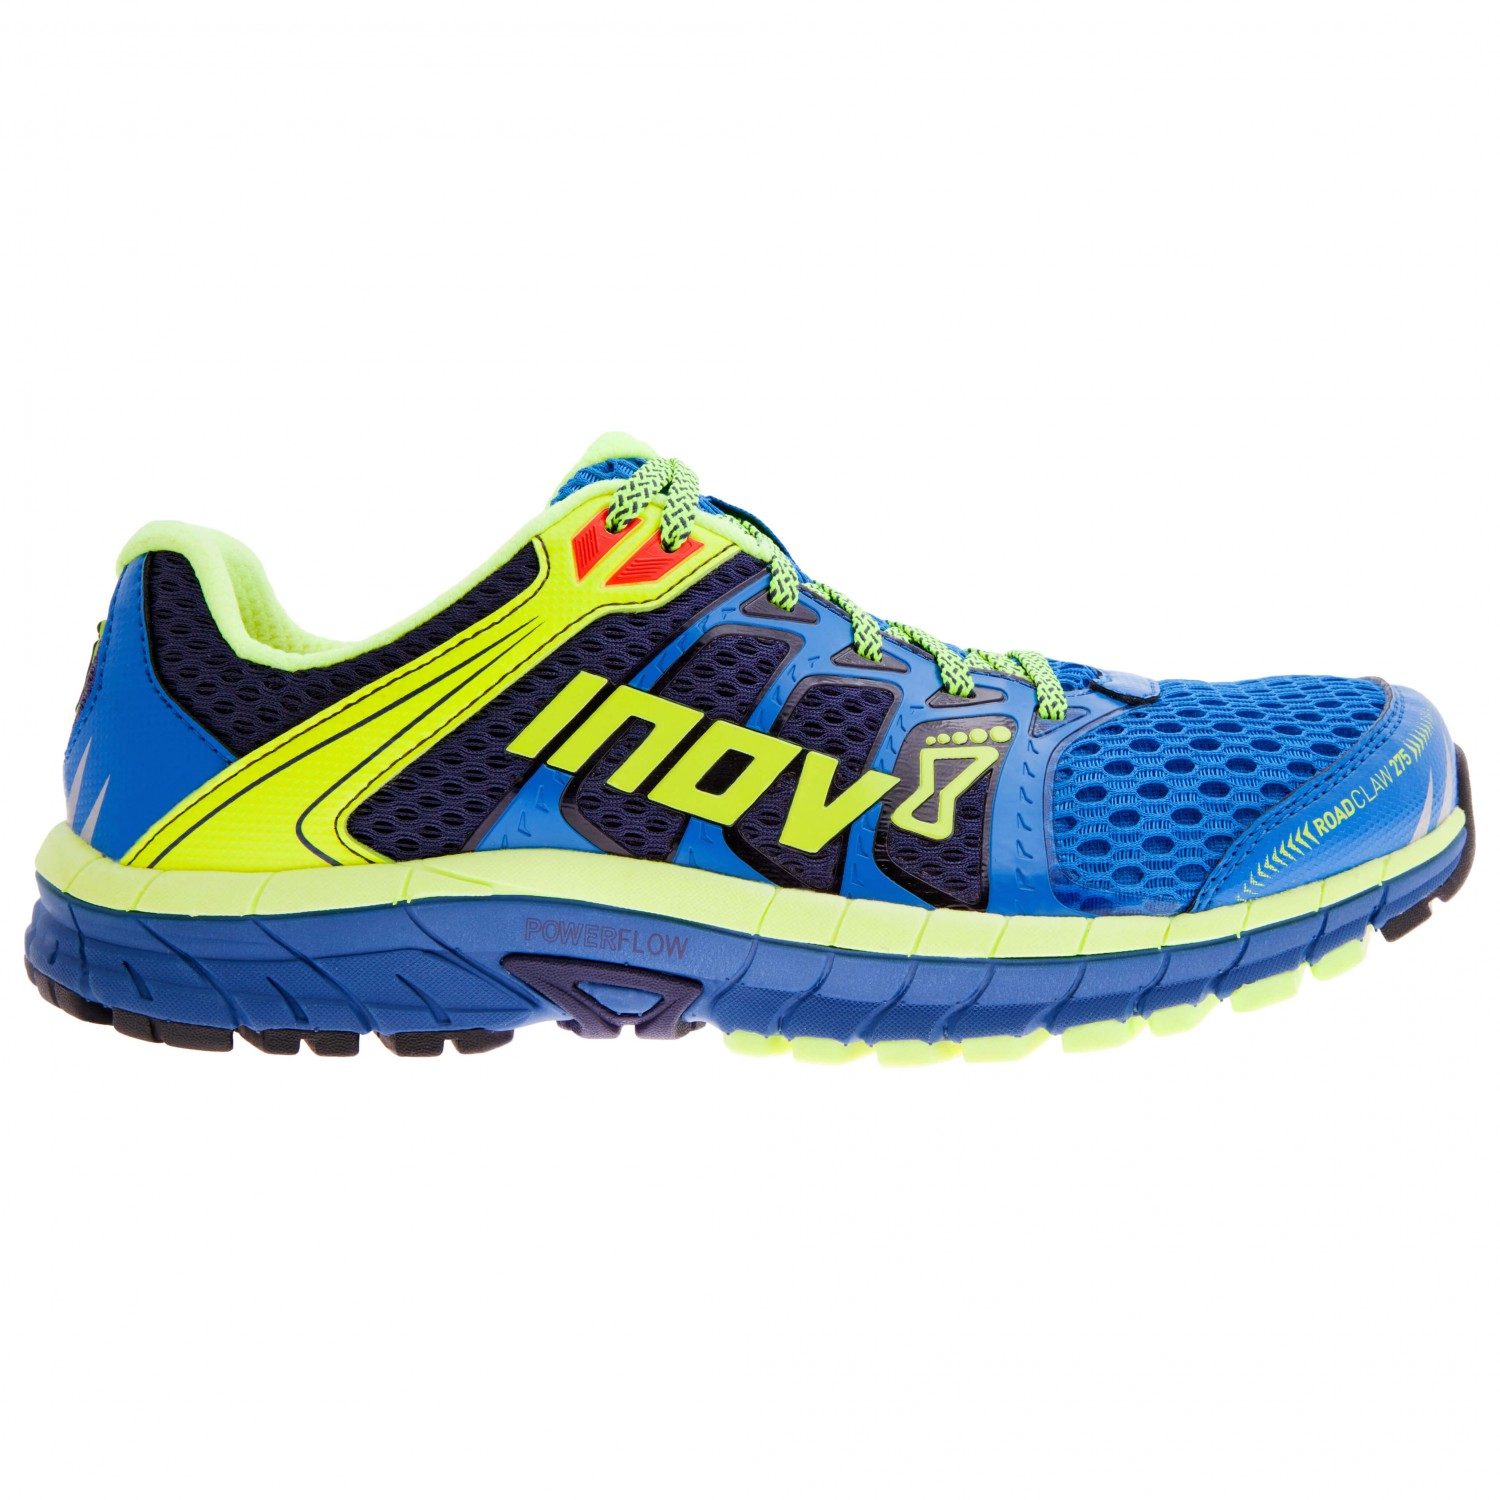 inov 8 road claw 275 running shoes free uk delivery